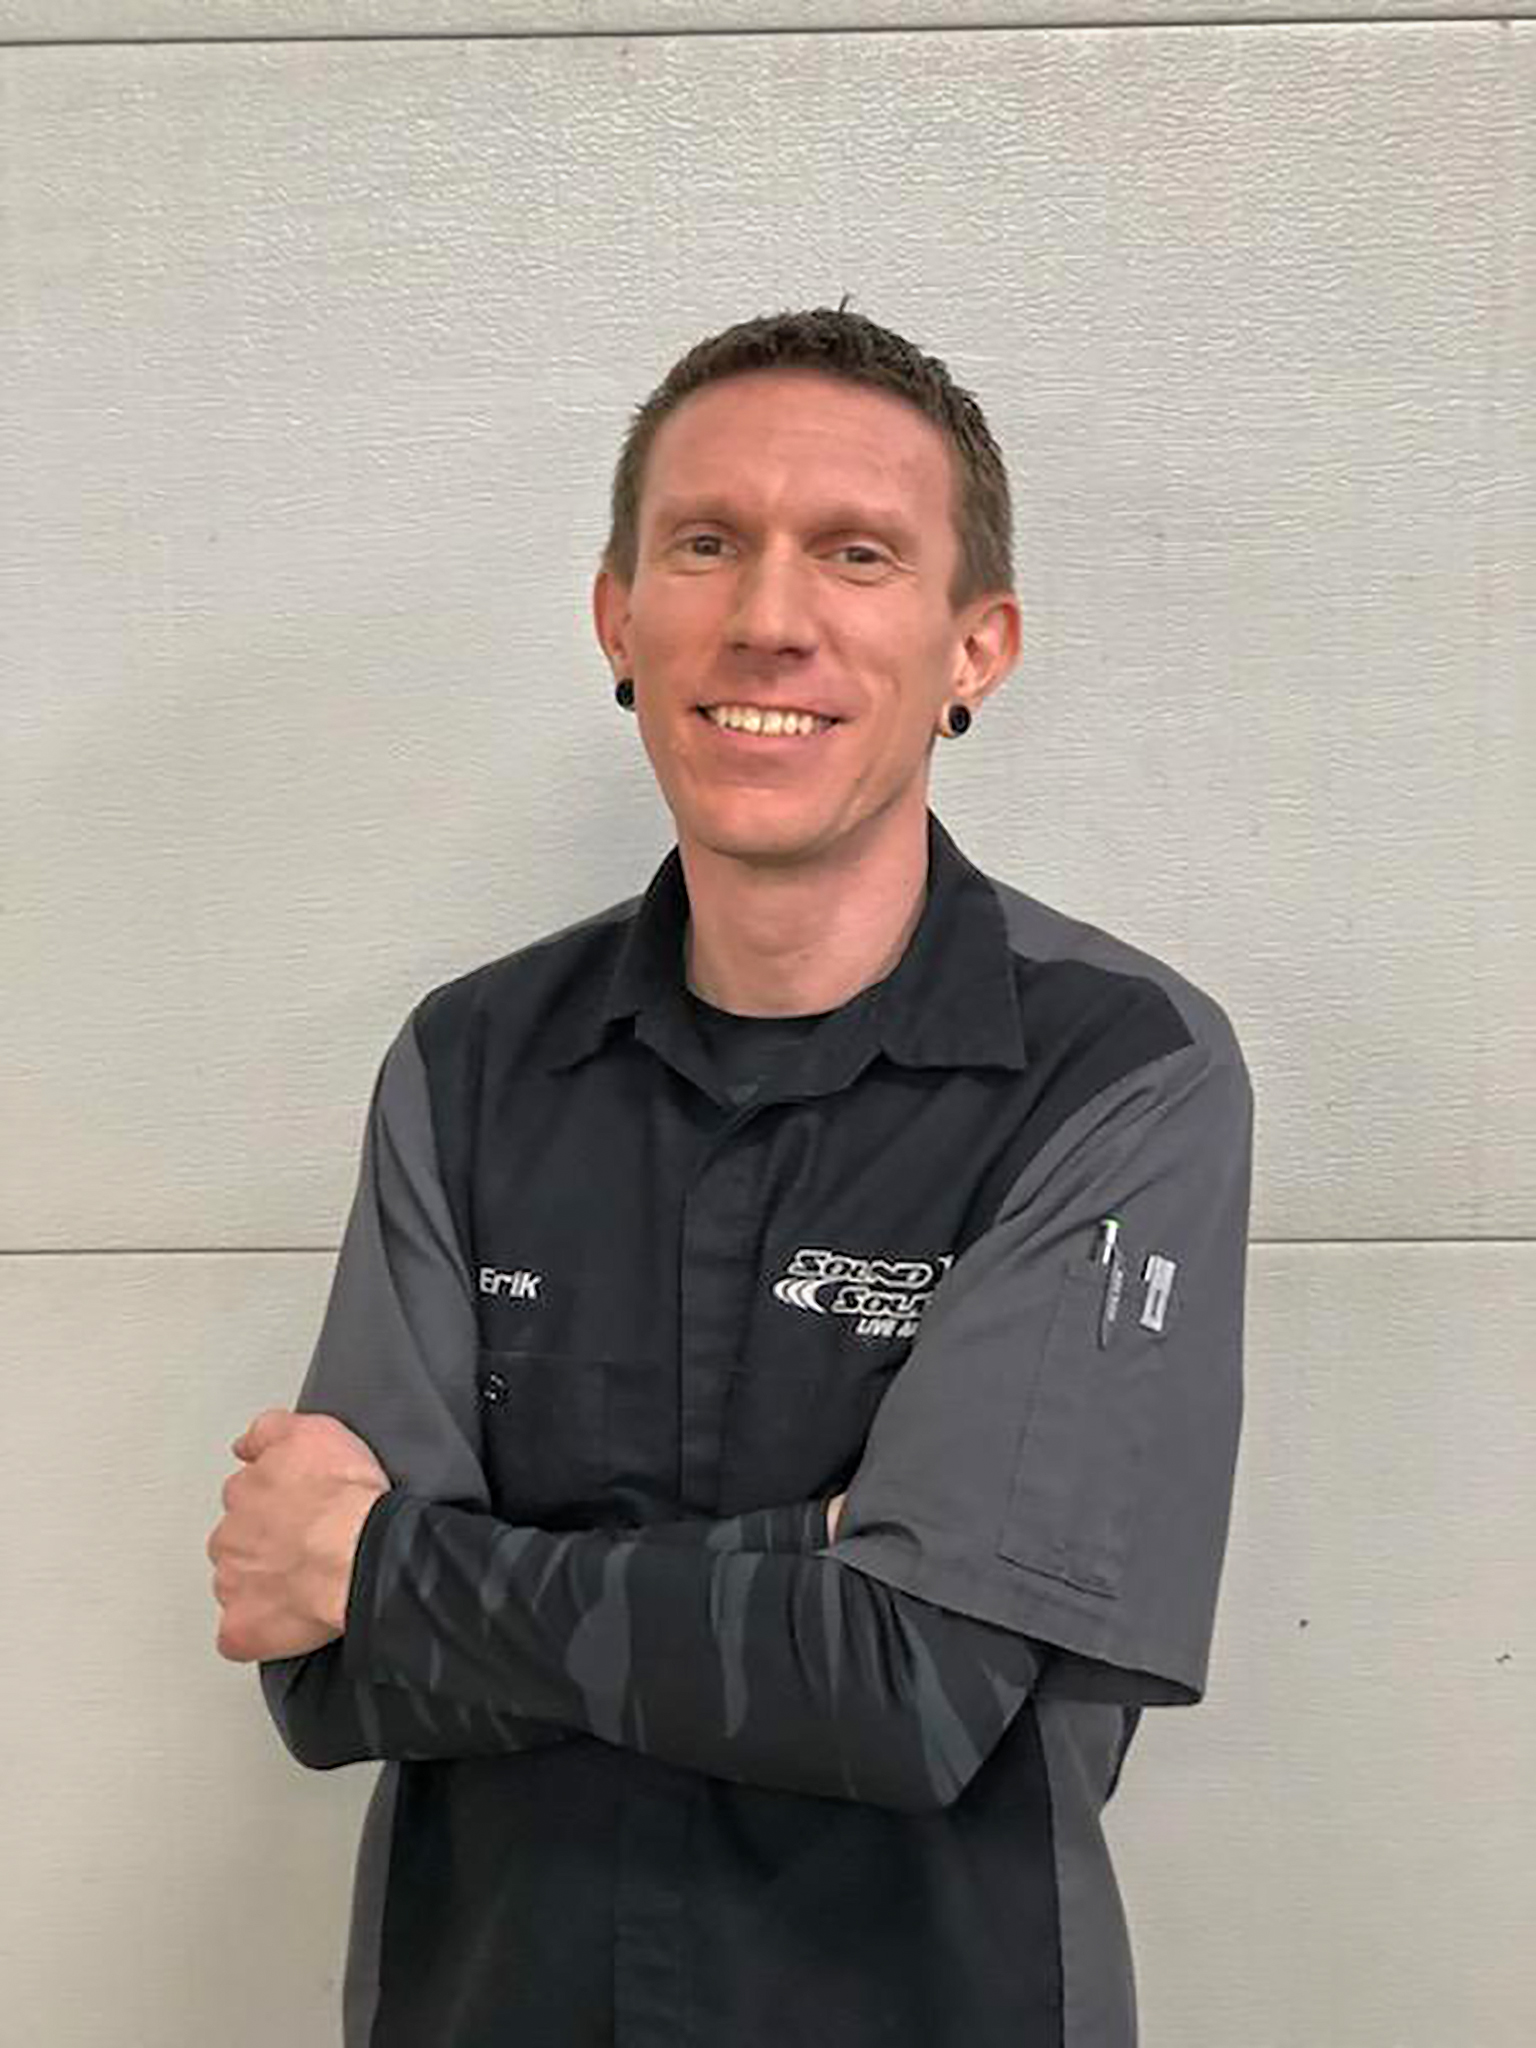 Erik Summers - Erik has been in the Car and Home Audio industry for over 20 years! When it comes to custom car audio builds or home audio expertise, Erik is our go to guy!